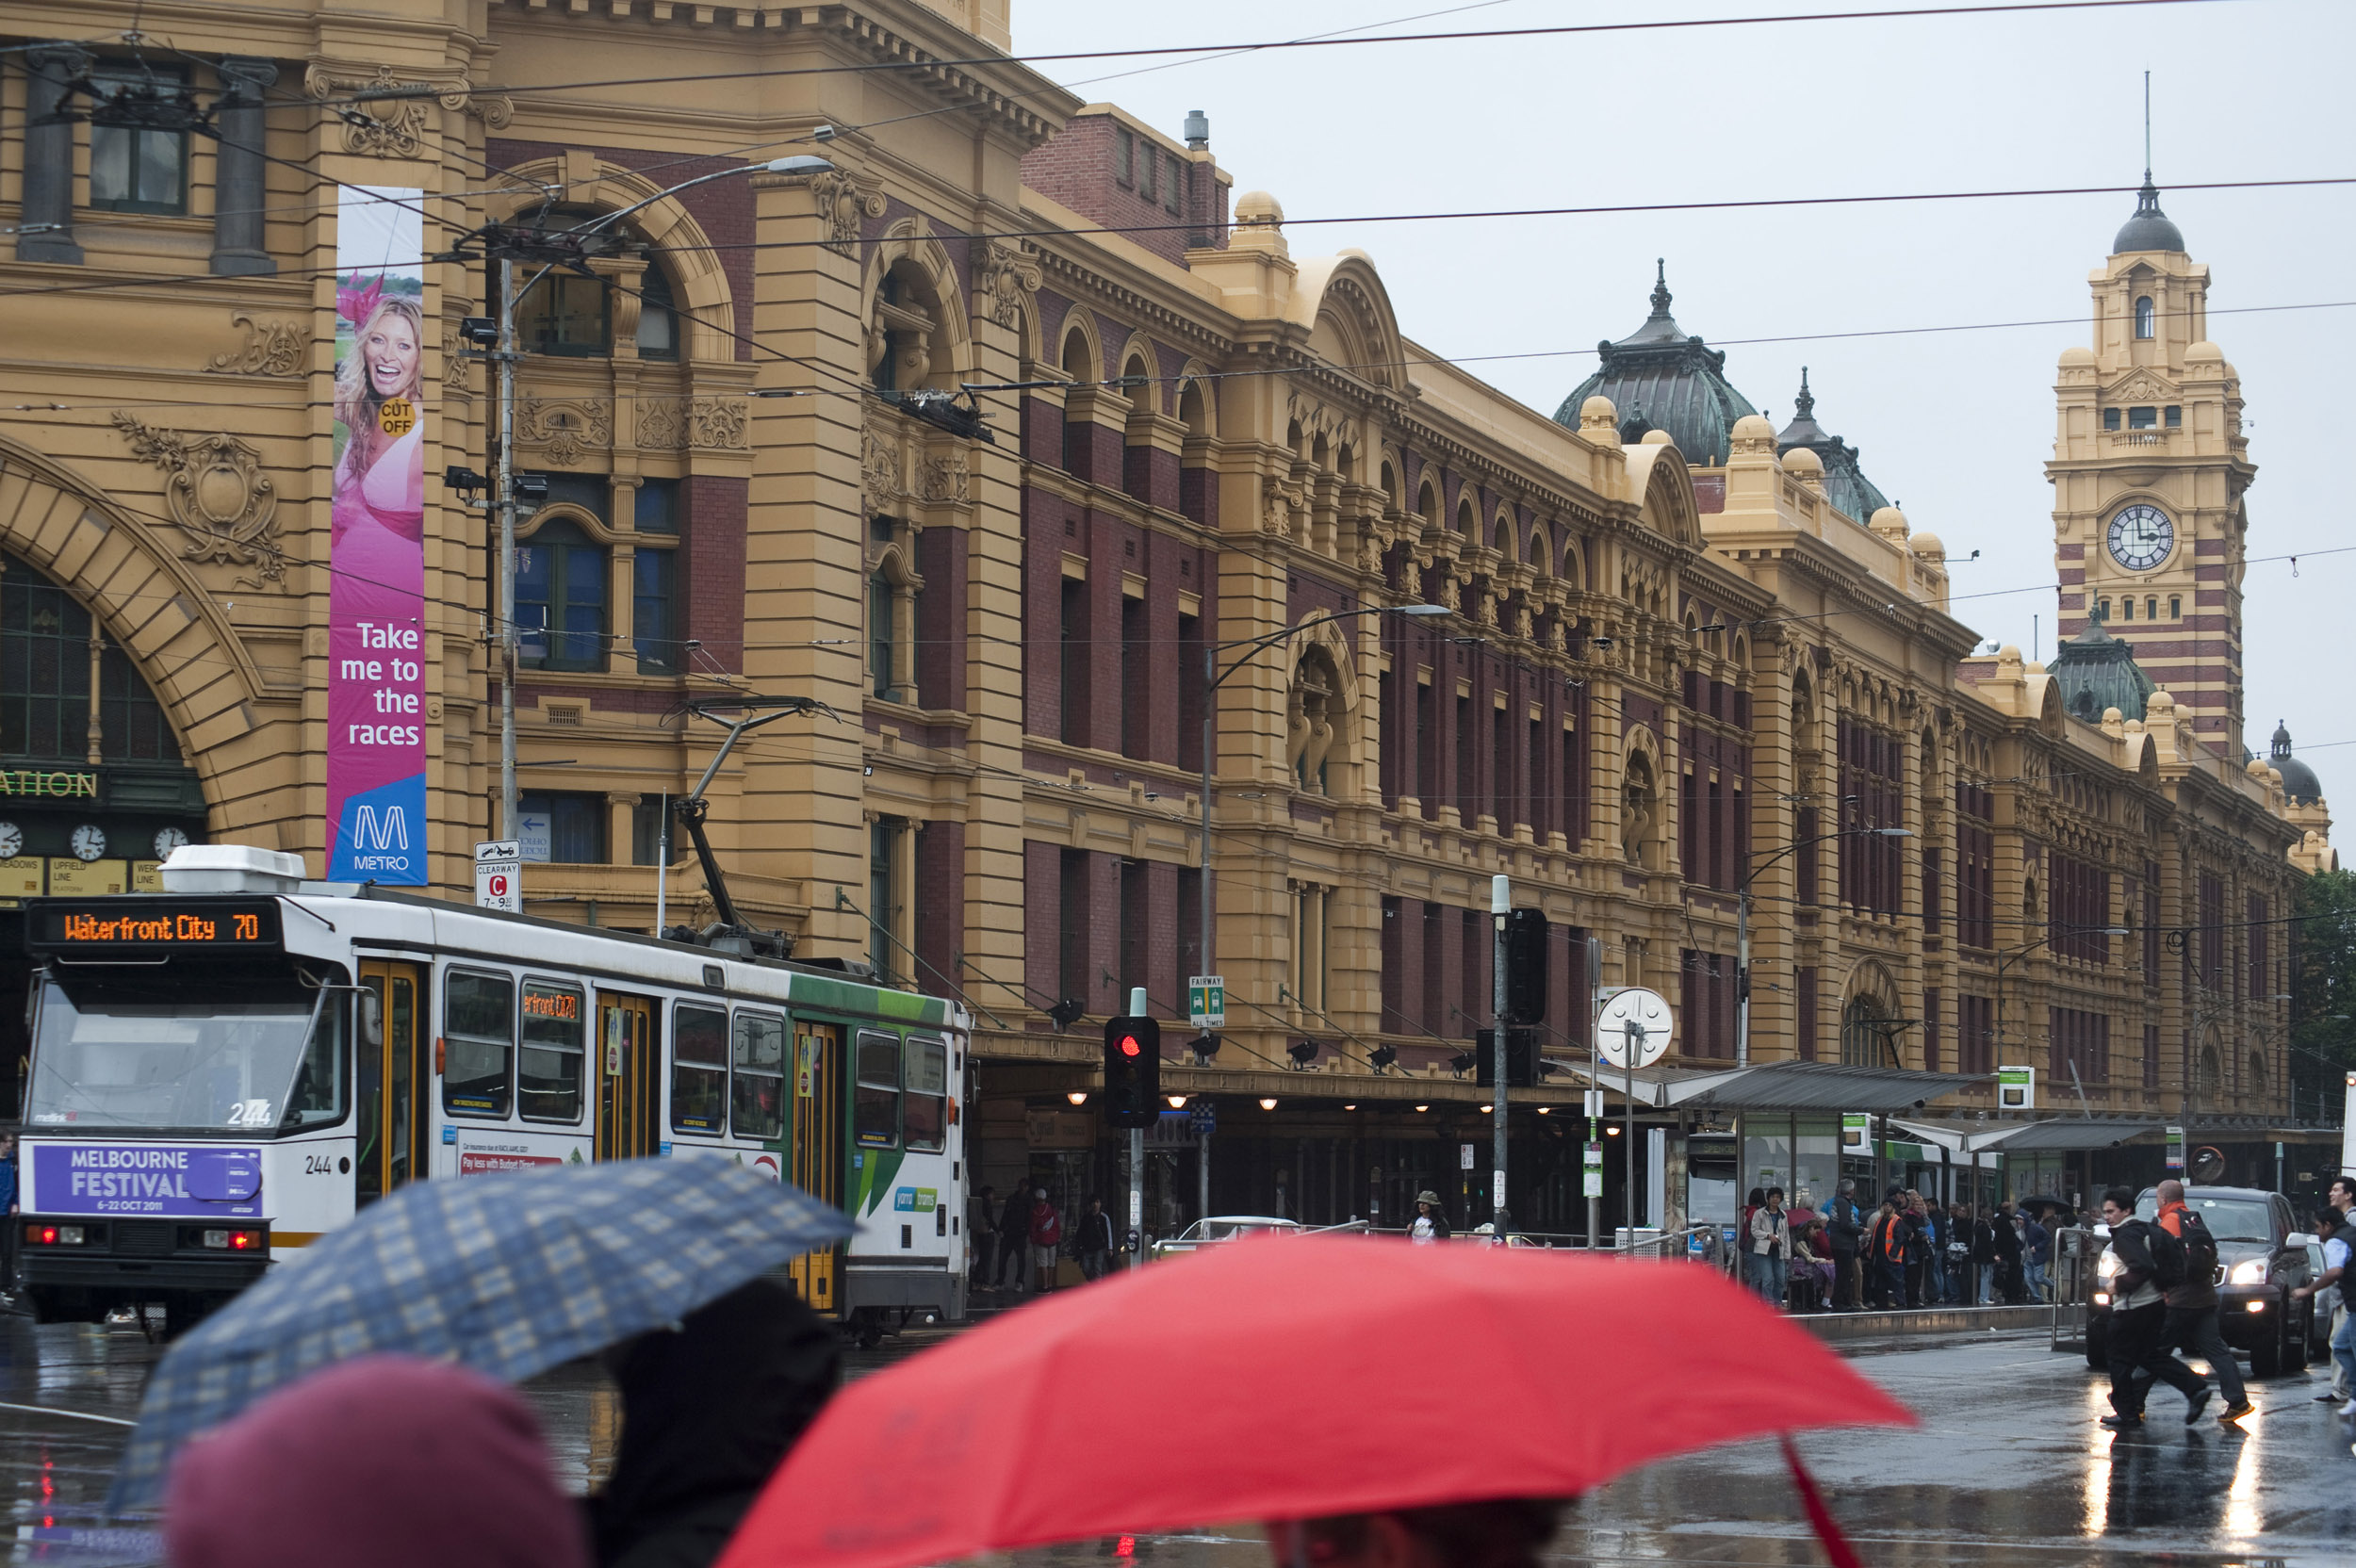 A busy winter scene and umbrellas on Flinders street in Melbourne city, Australia.